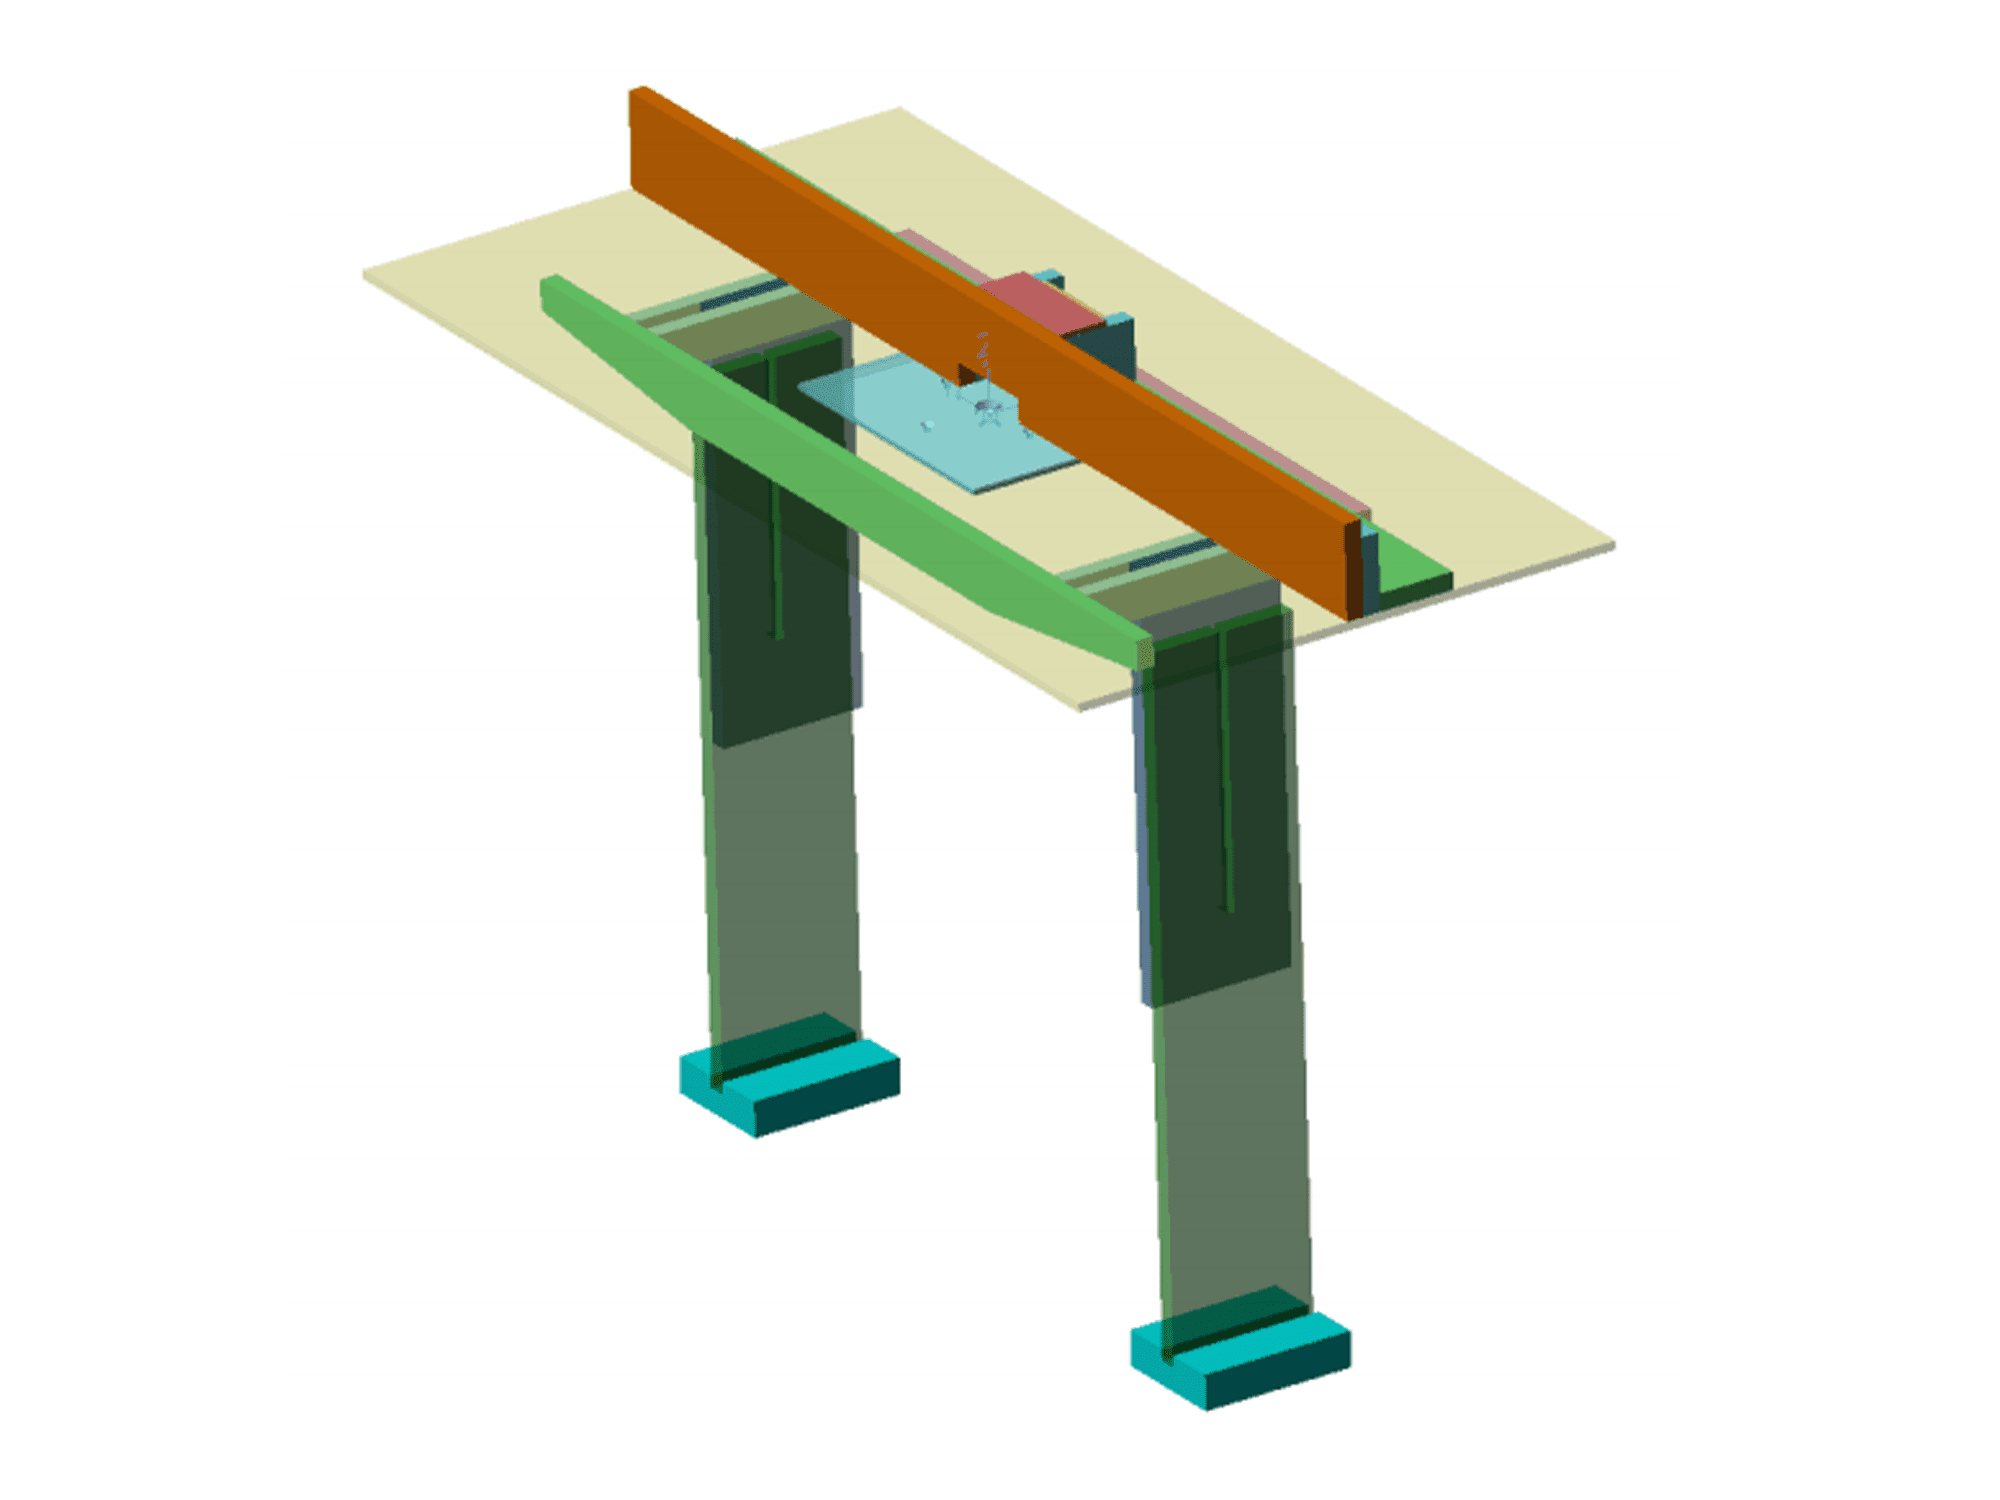 Wiring router table images wiring table and diagram sample book images router table plans australia image collections wiring table and router table plans australia gallery wiring table greentooth Choice Image